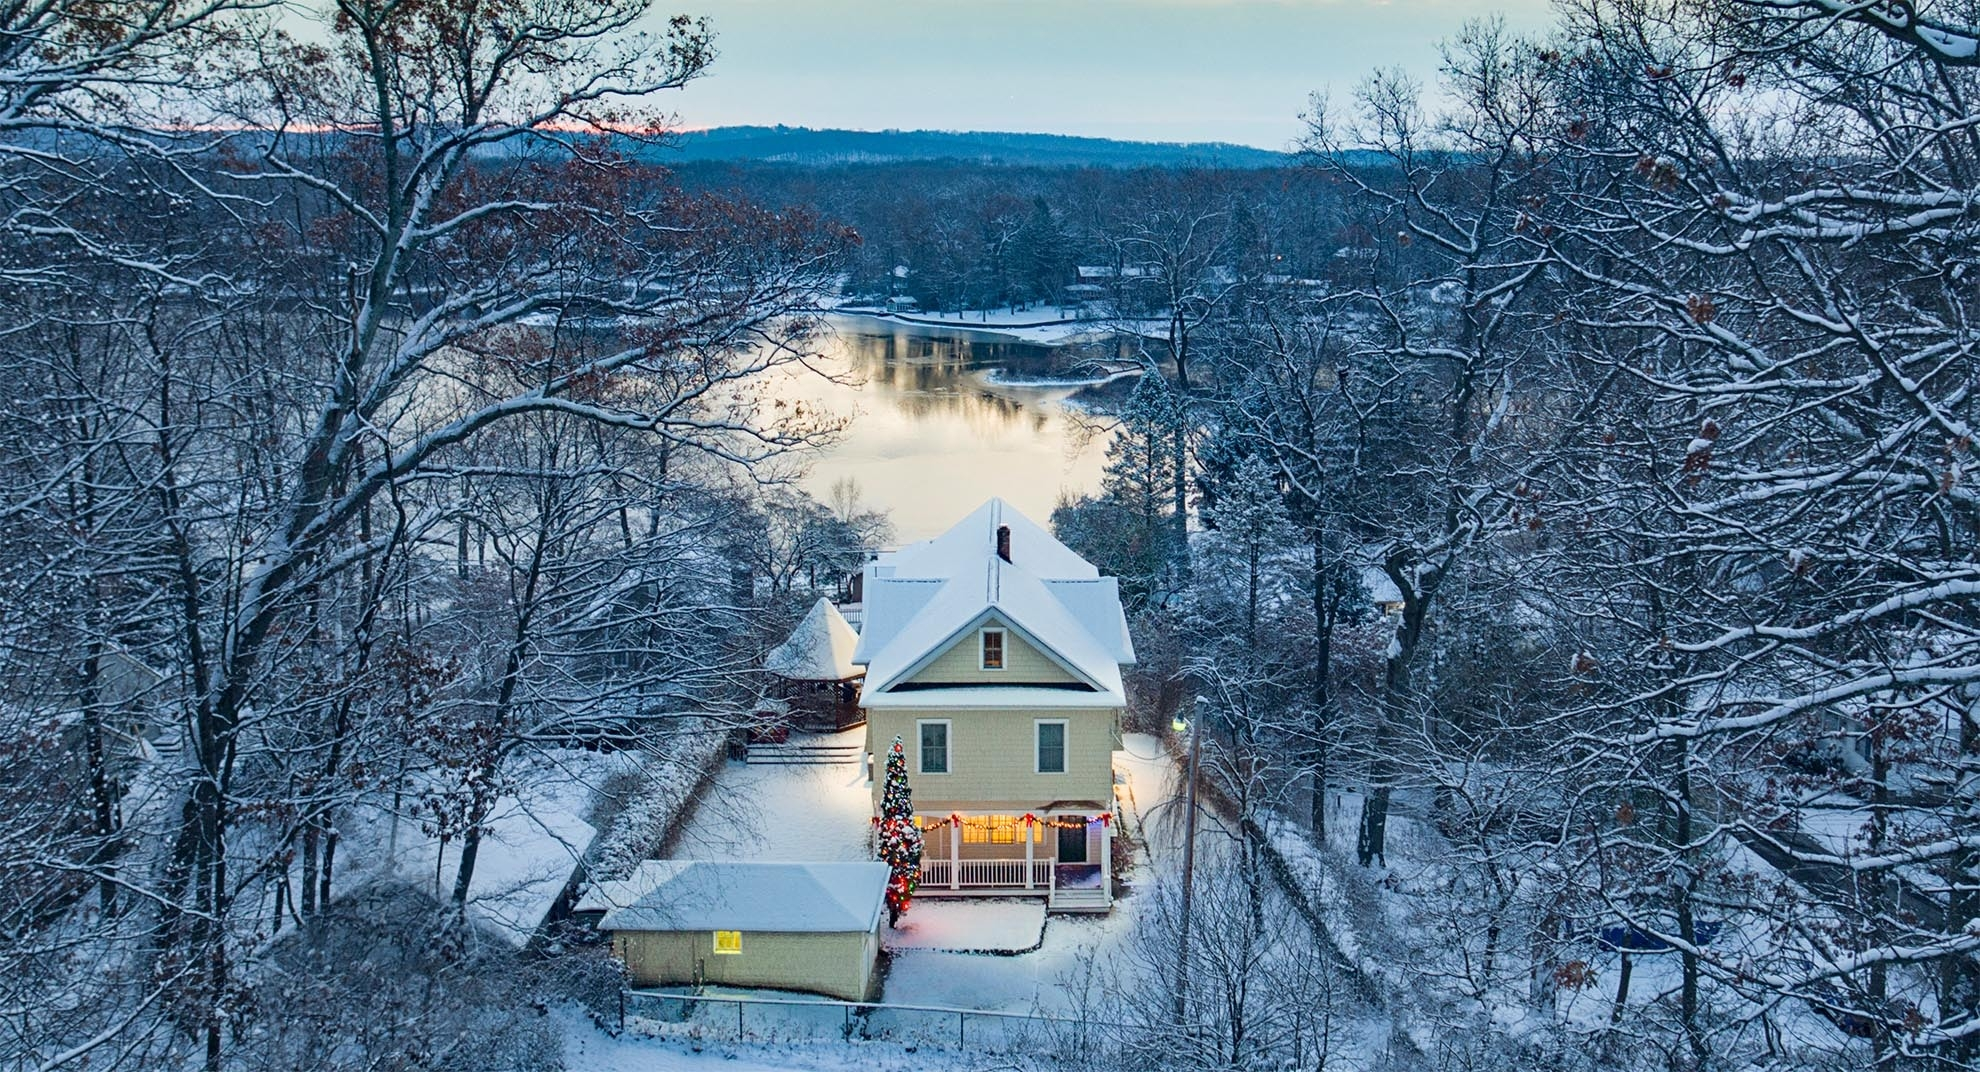 Drone Photograph of Lake Home with Christmas Decorations after snow fall